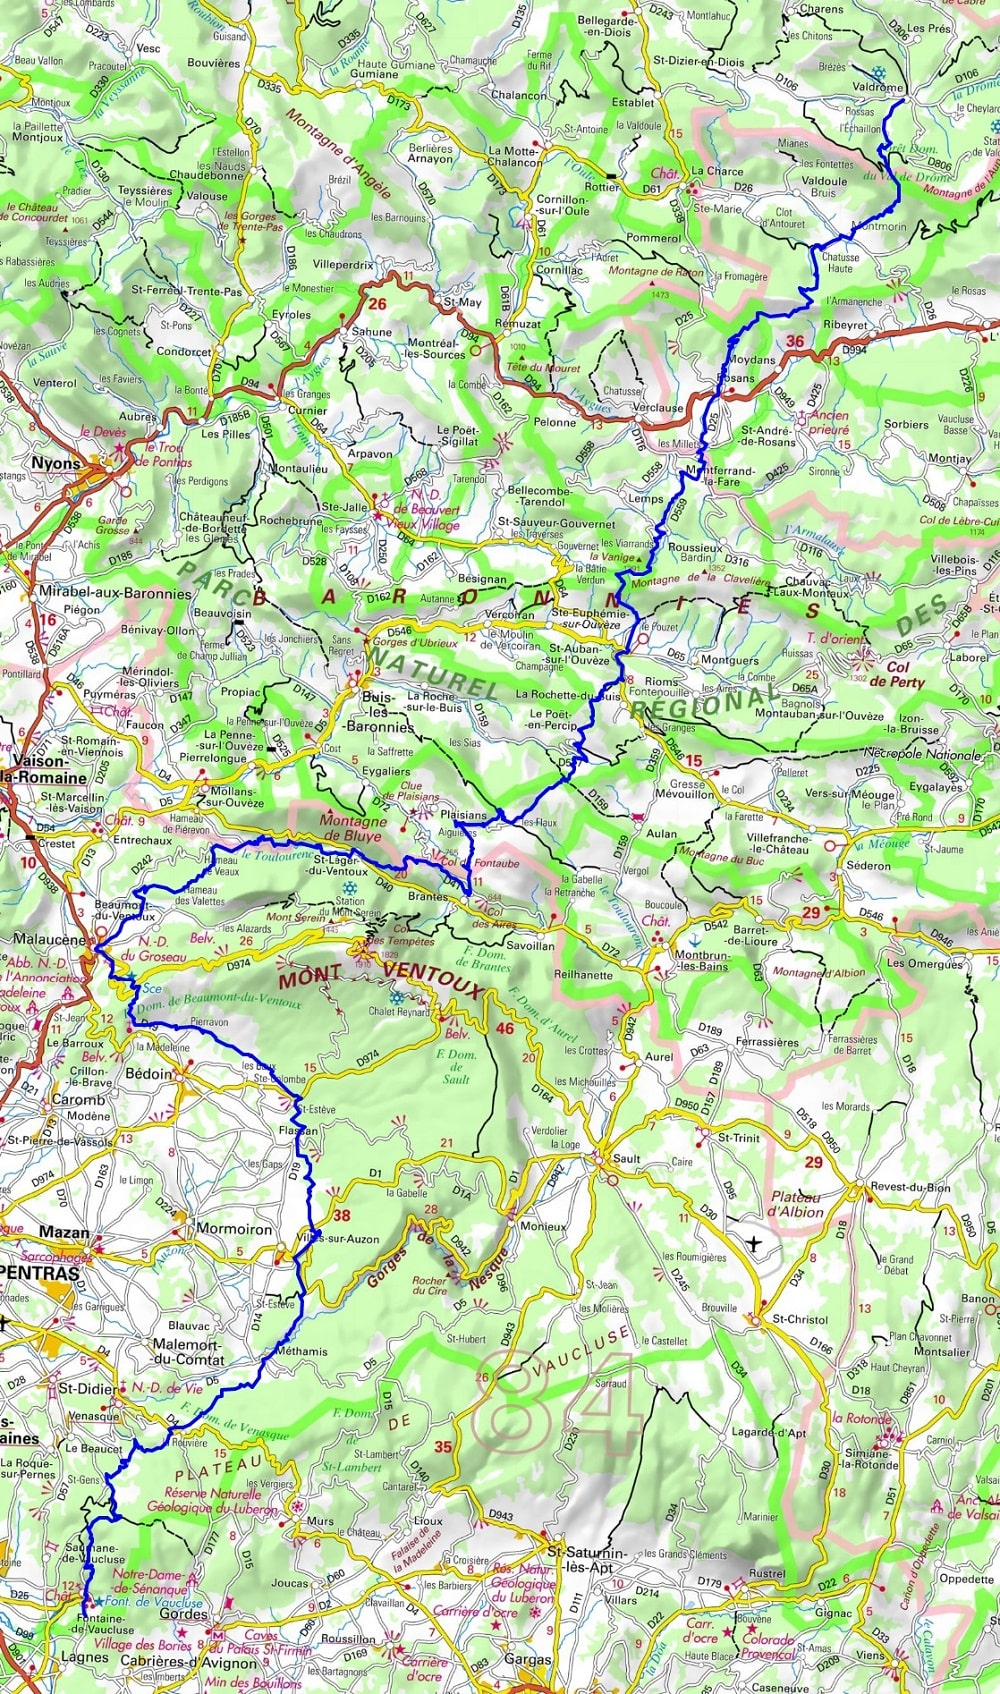 GR91 Hiking from Valdrome (Drome) to Fontaine-de-Vaucluse (Vaucluse) 1